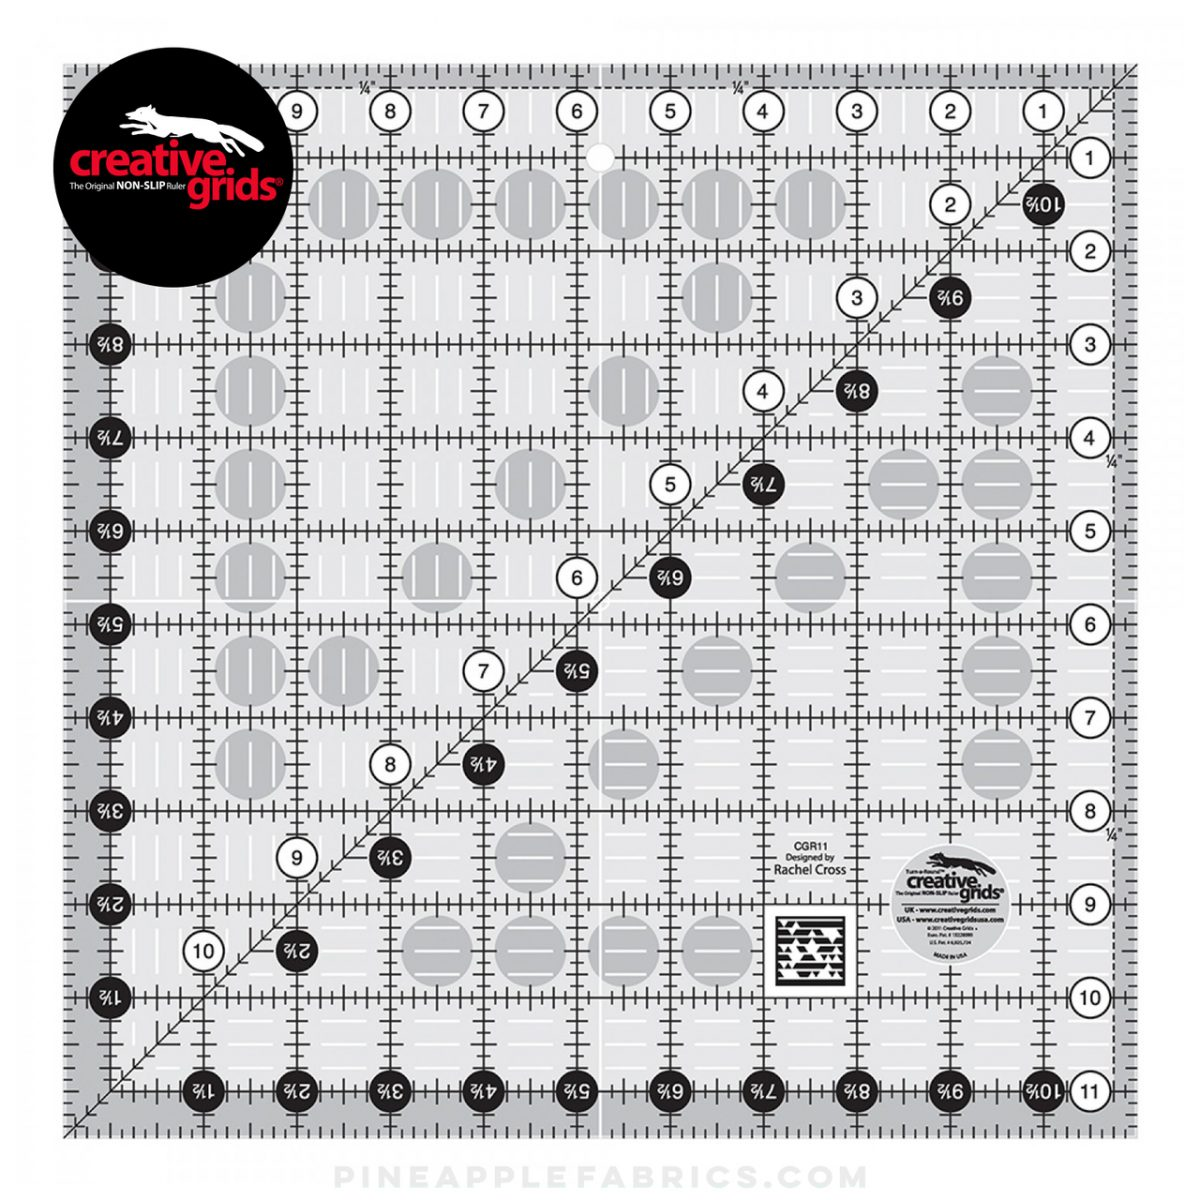 CGR11 - Creative Grids Quilt Ruler 11-1/2in x 11-1/2in